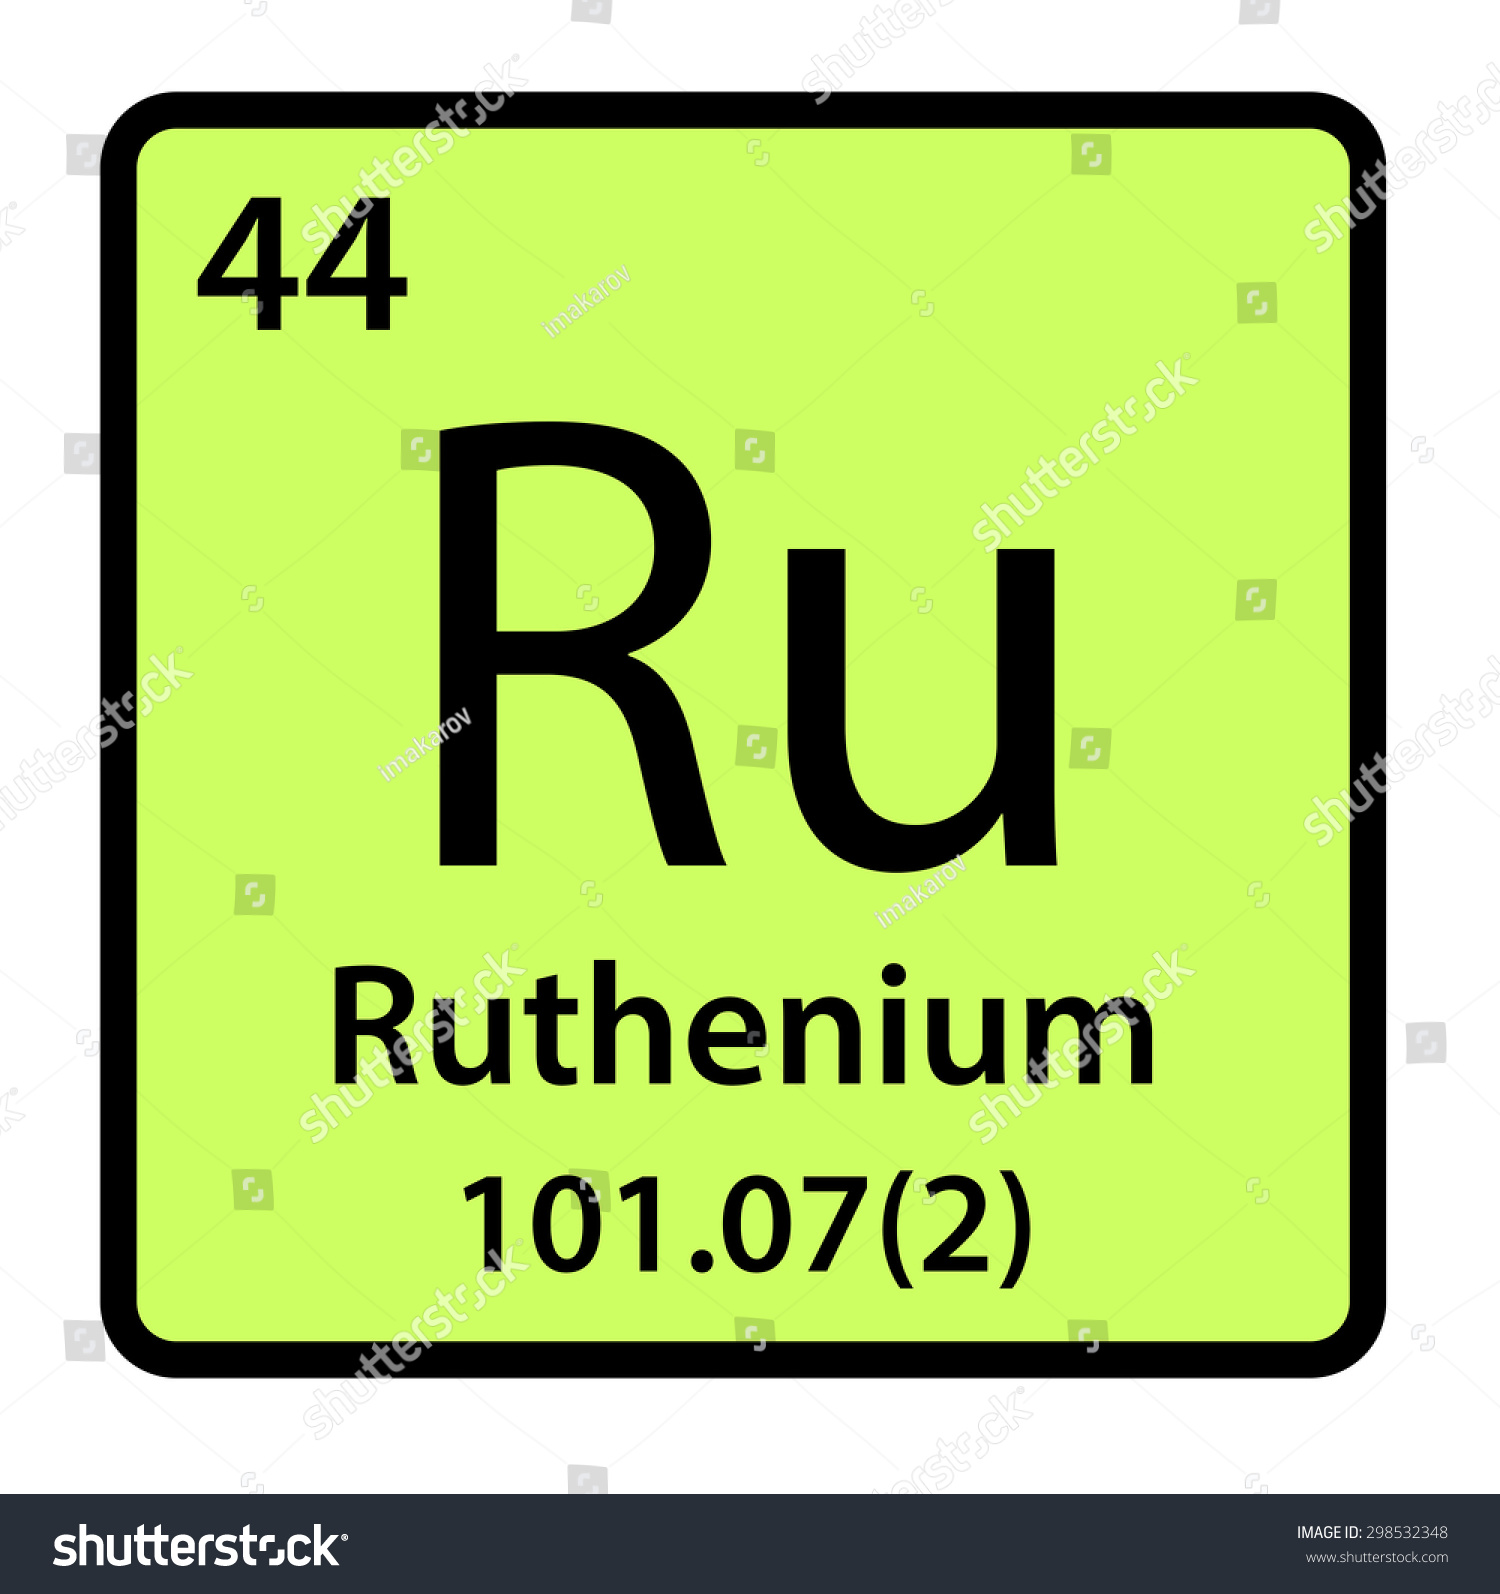 Element ruthenium periodic table stock illustration 298532348 element ruthenium of the periodic table gamestrikefo Choice Image